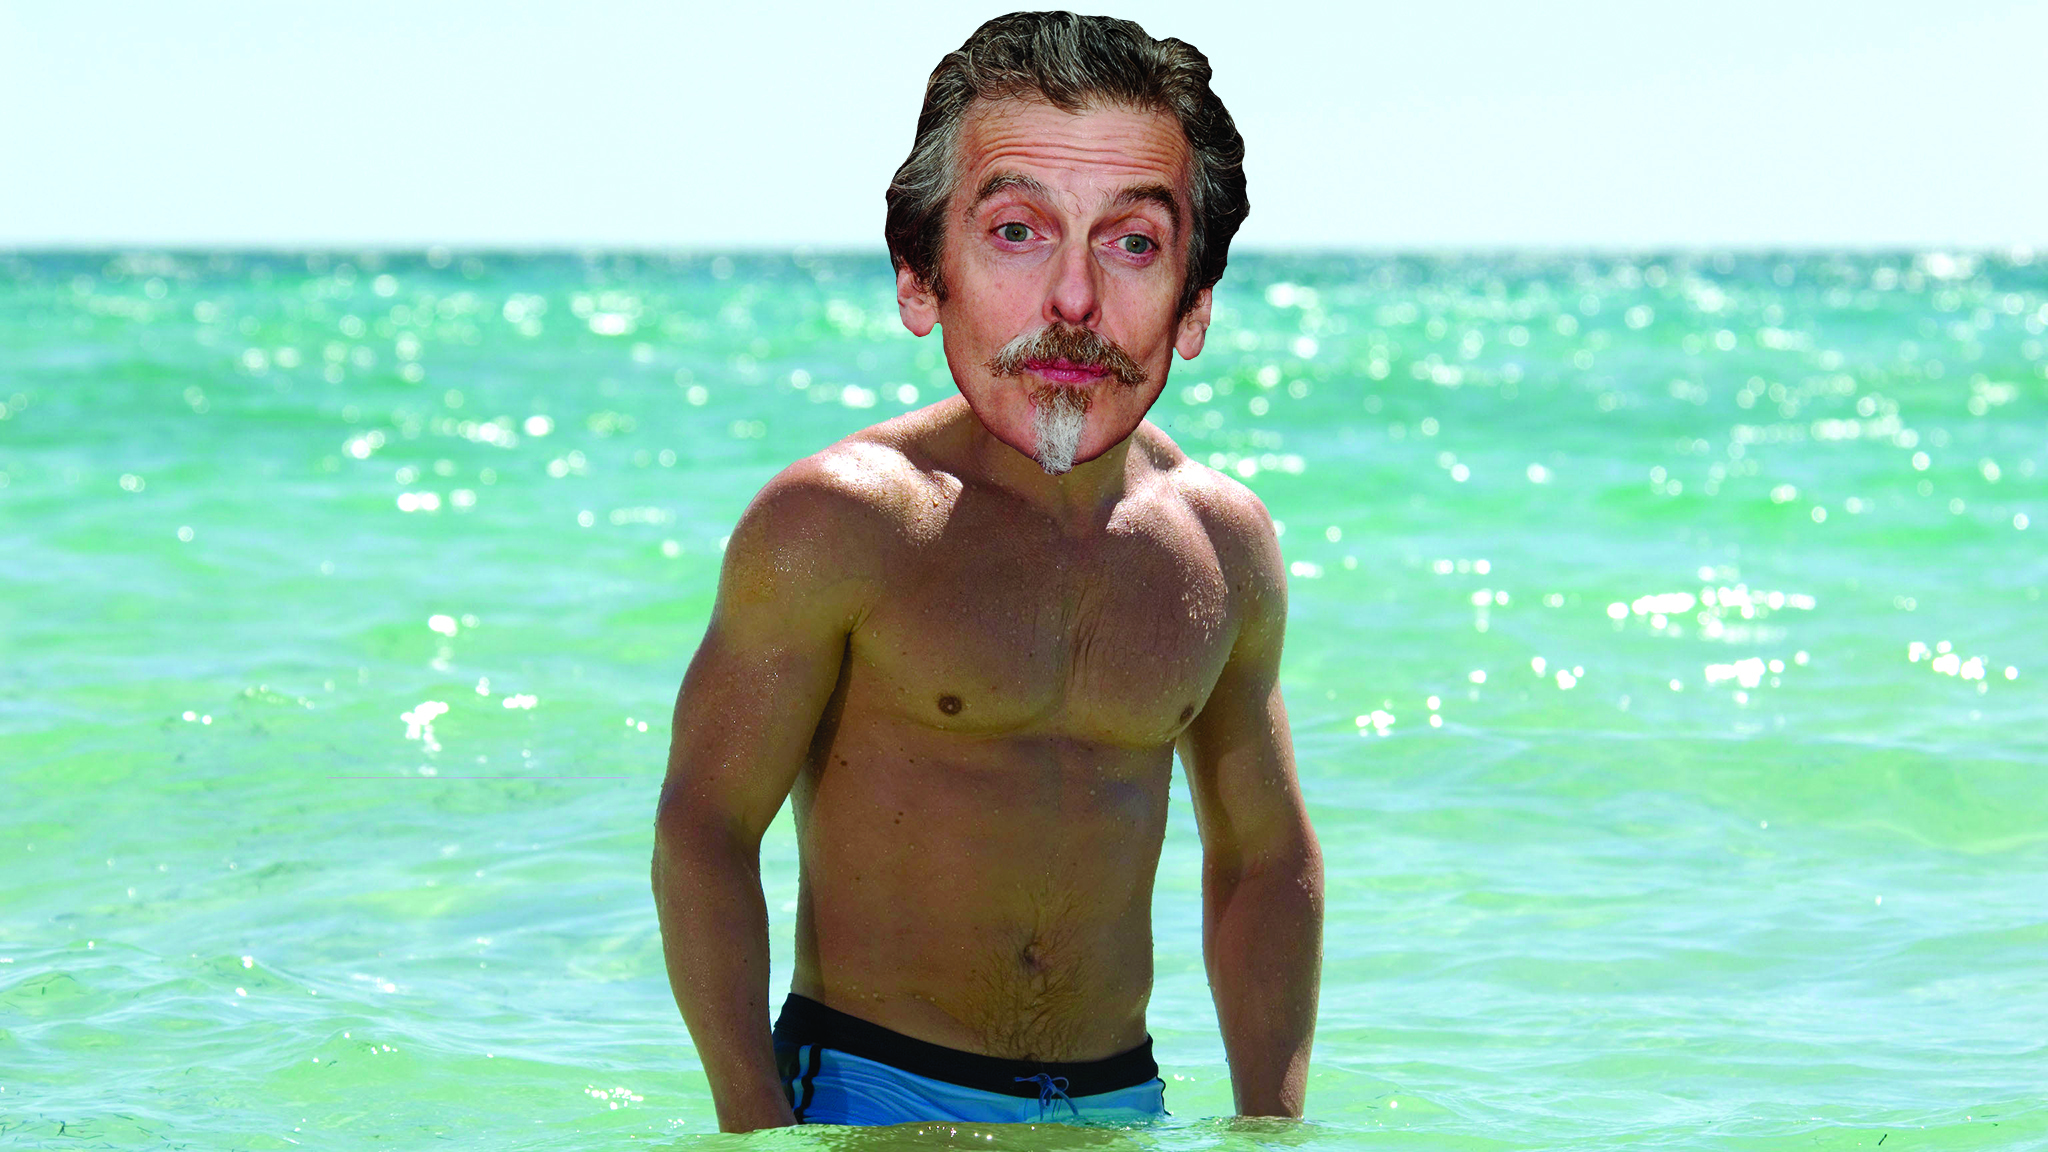 Peter Capaldi as James Bond